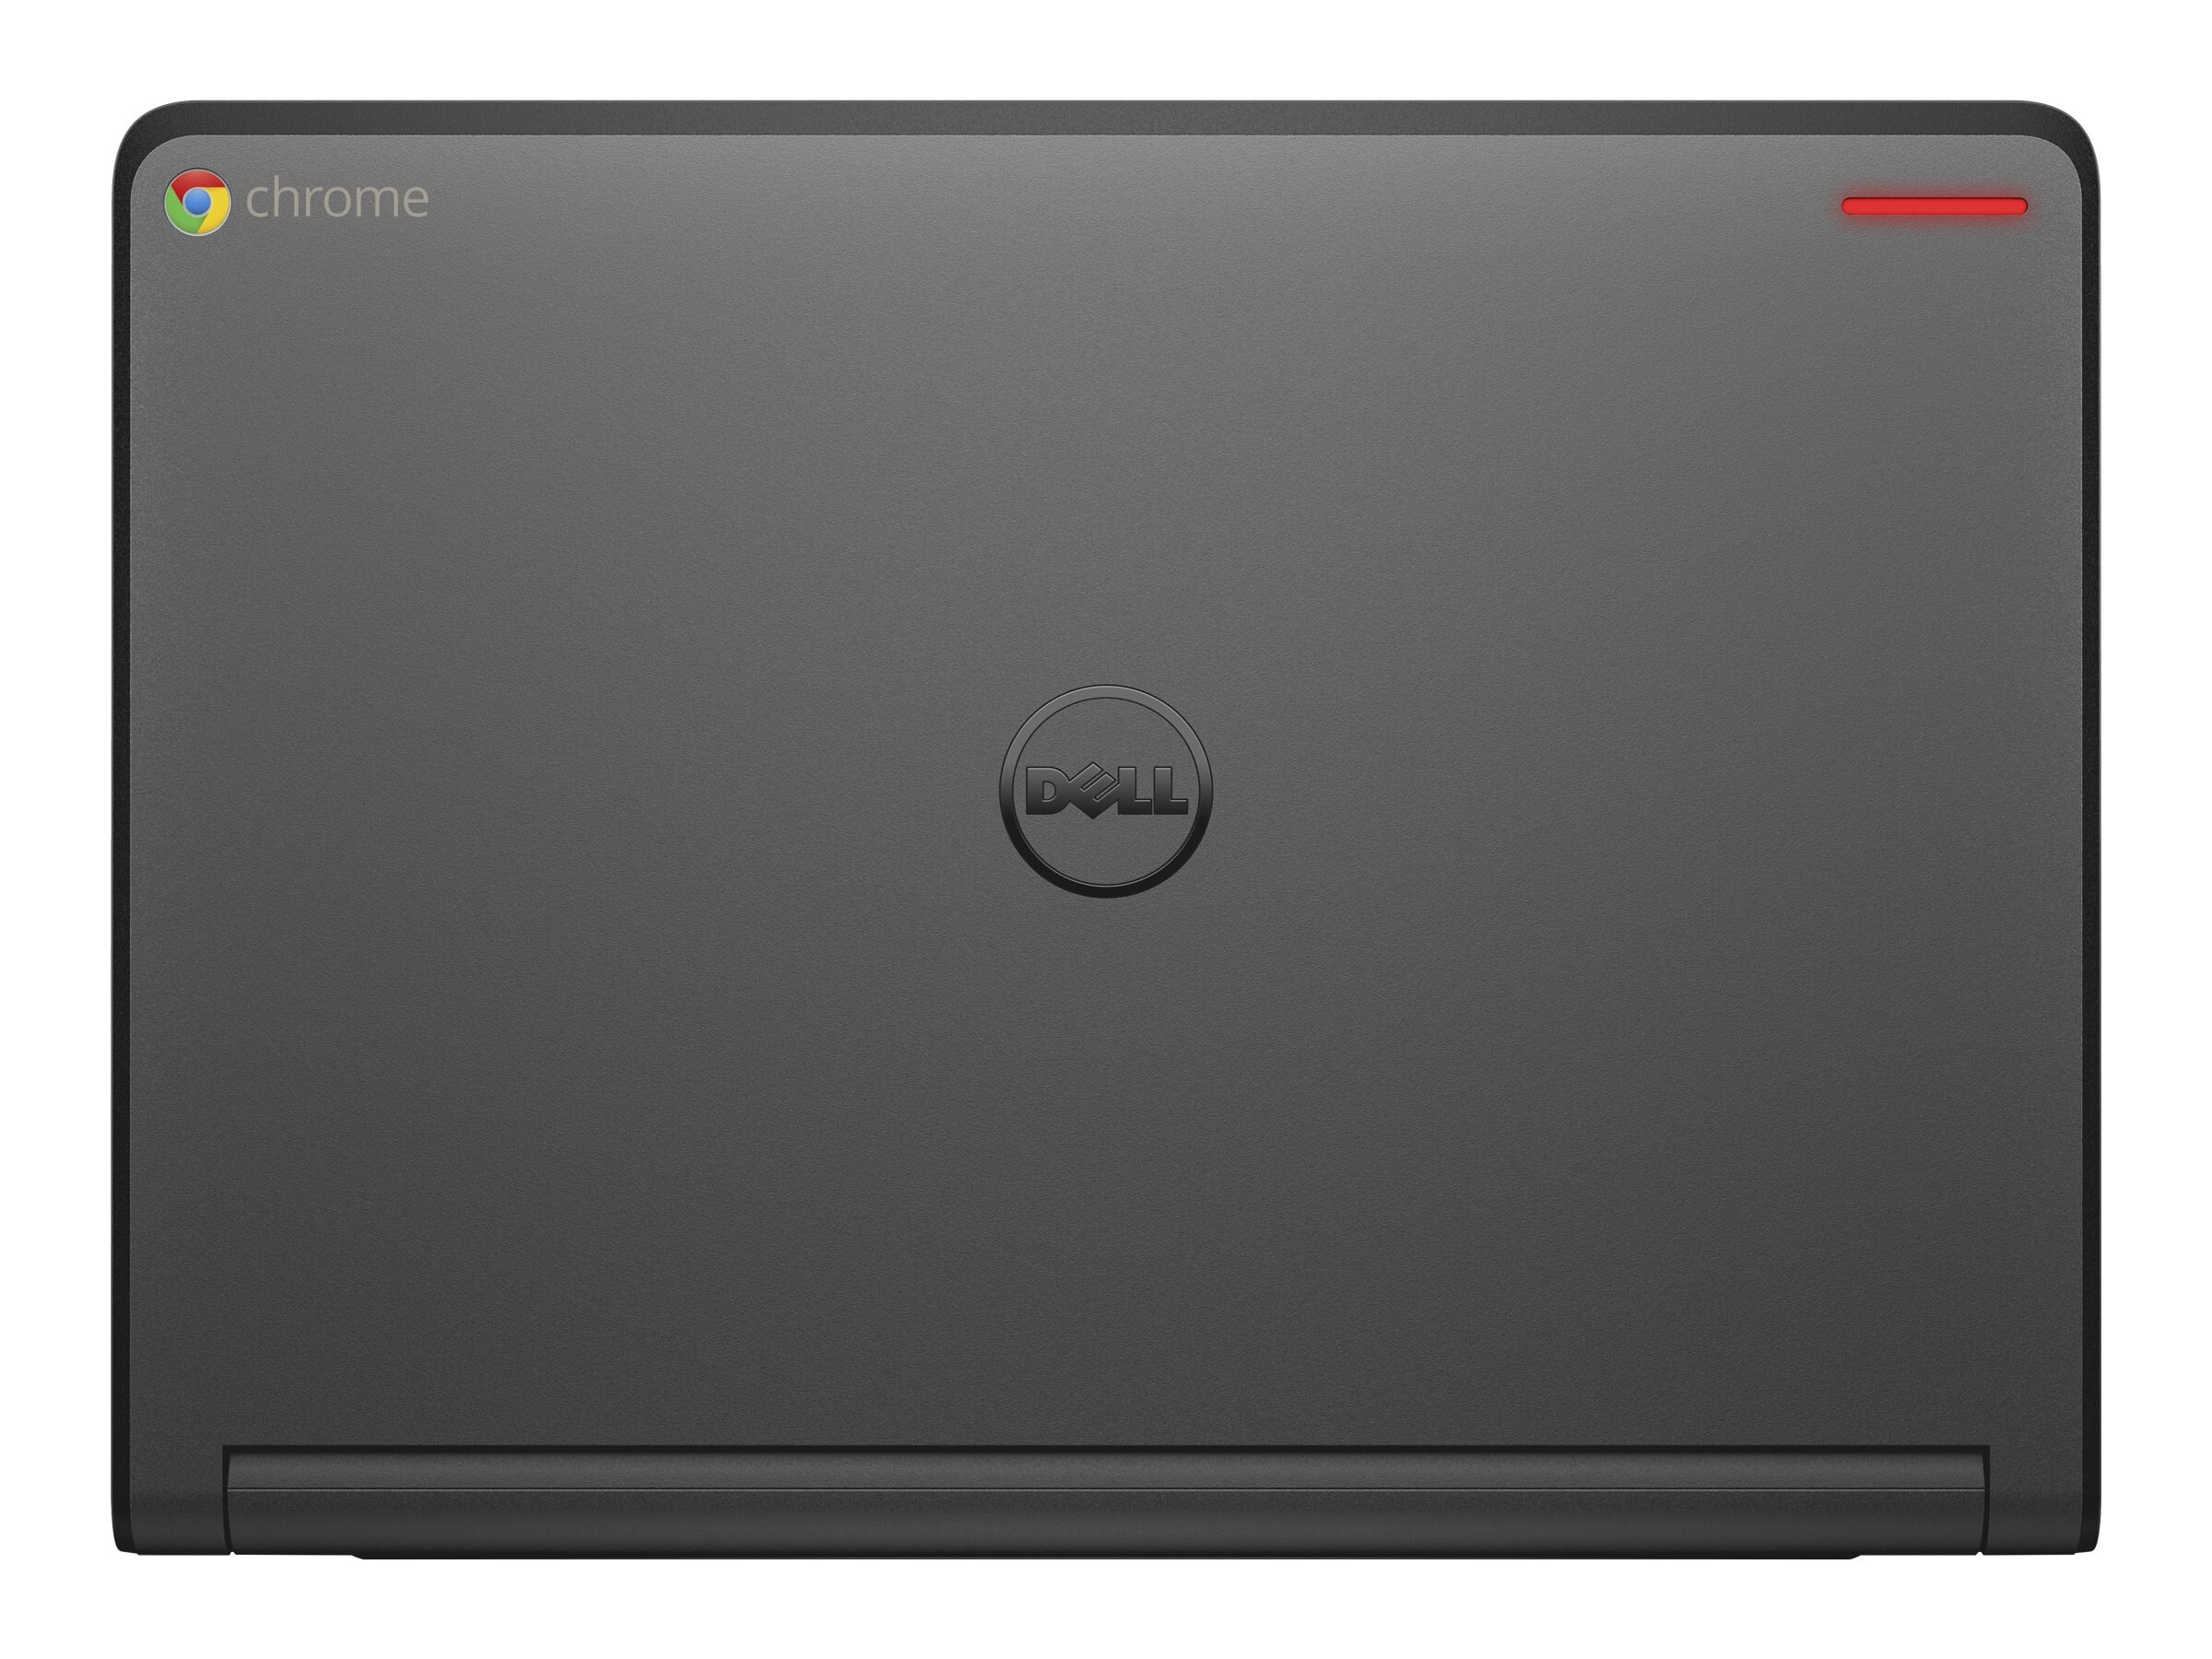 Dell 4MDFK Image 4